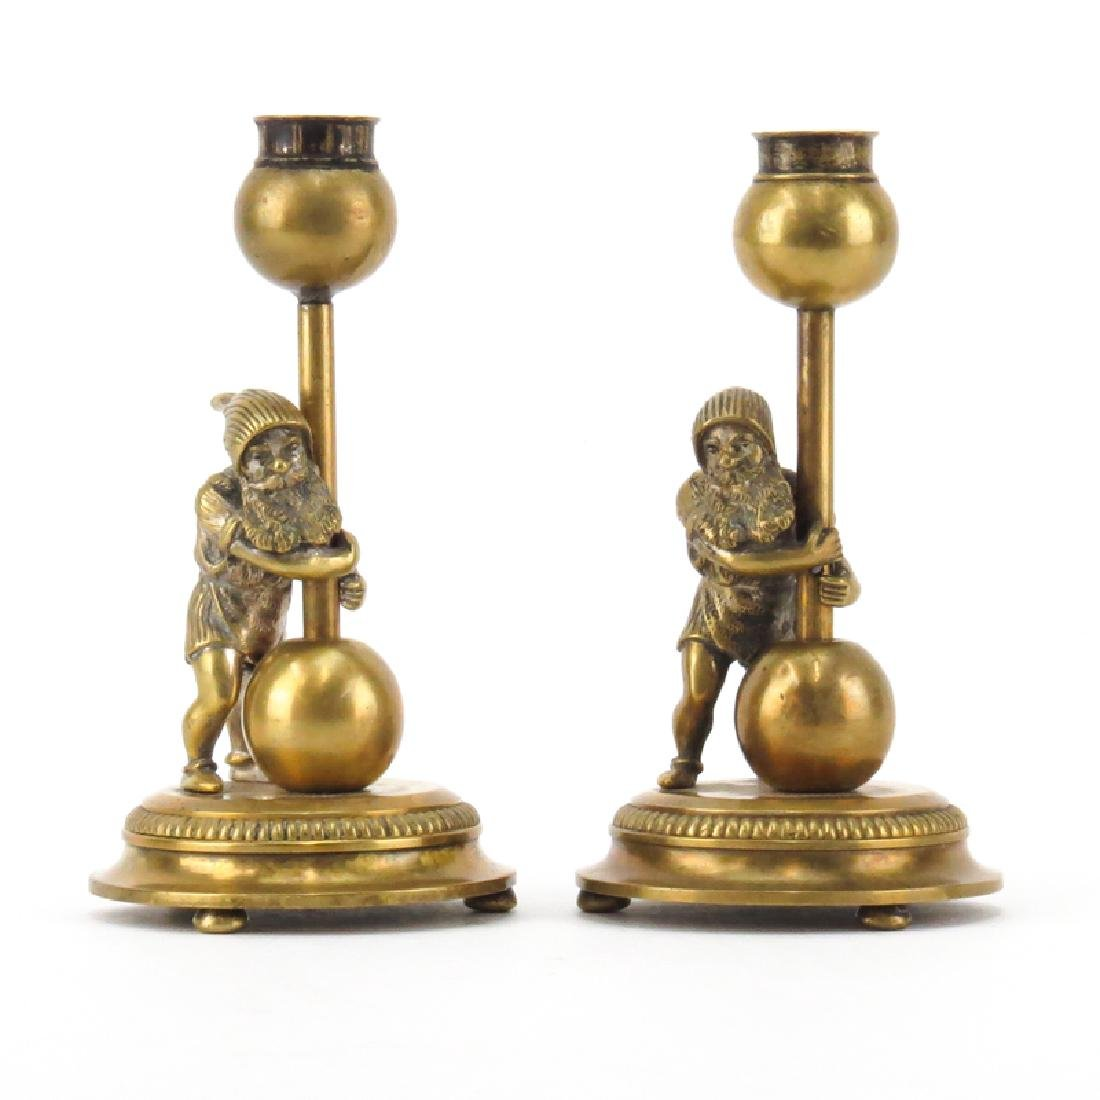 Pair of Early 20th Century Gnome Figural Bronze